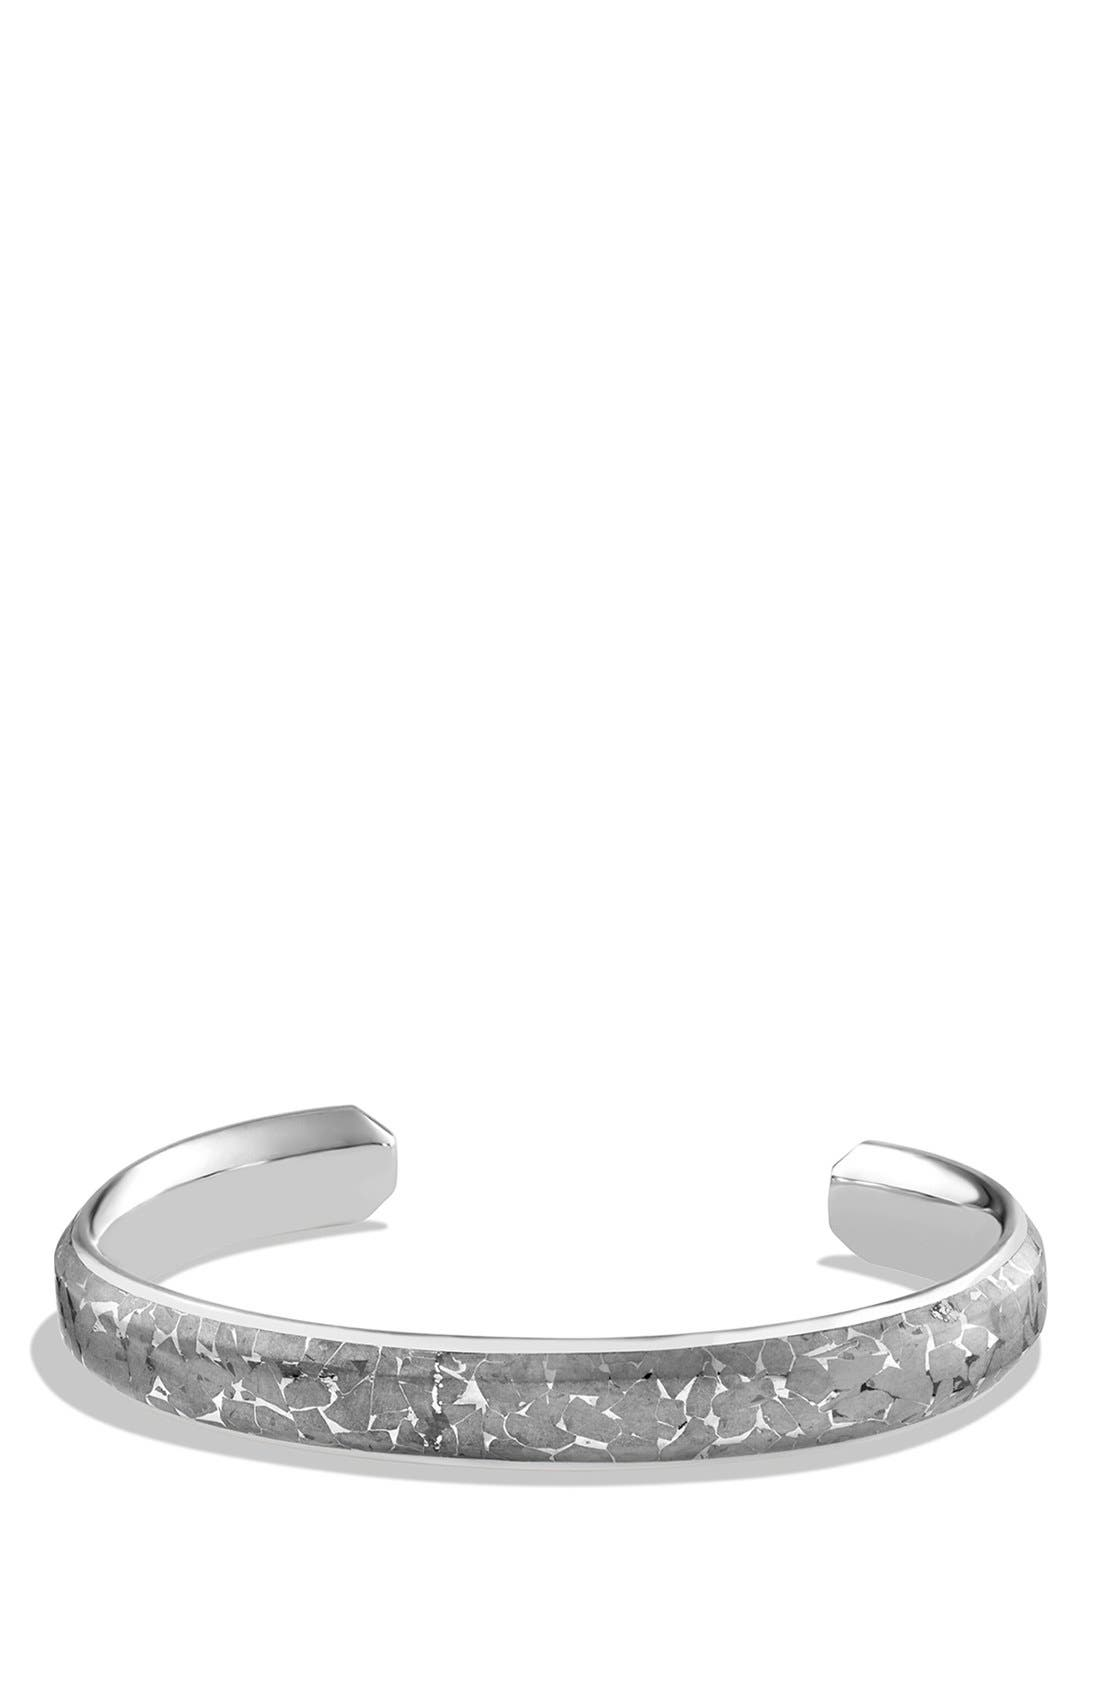 Main Image - David Yurman 'Meteorite' Fused Cuff Bracelet